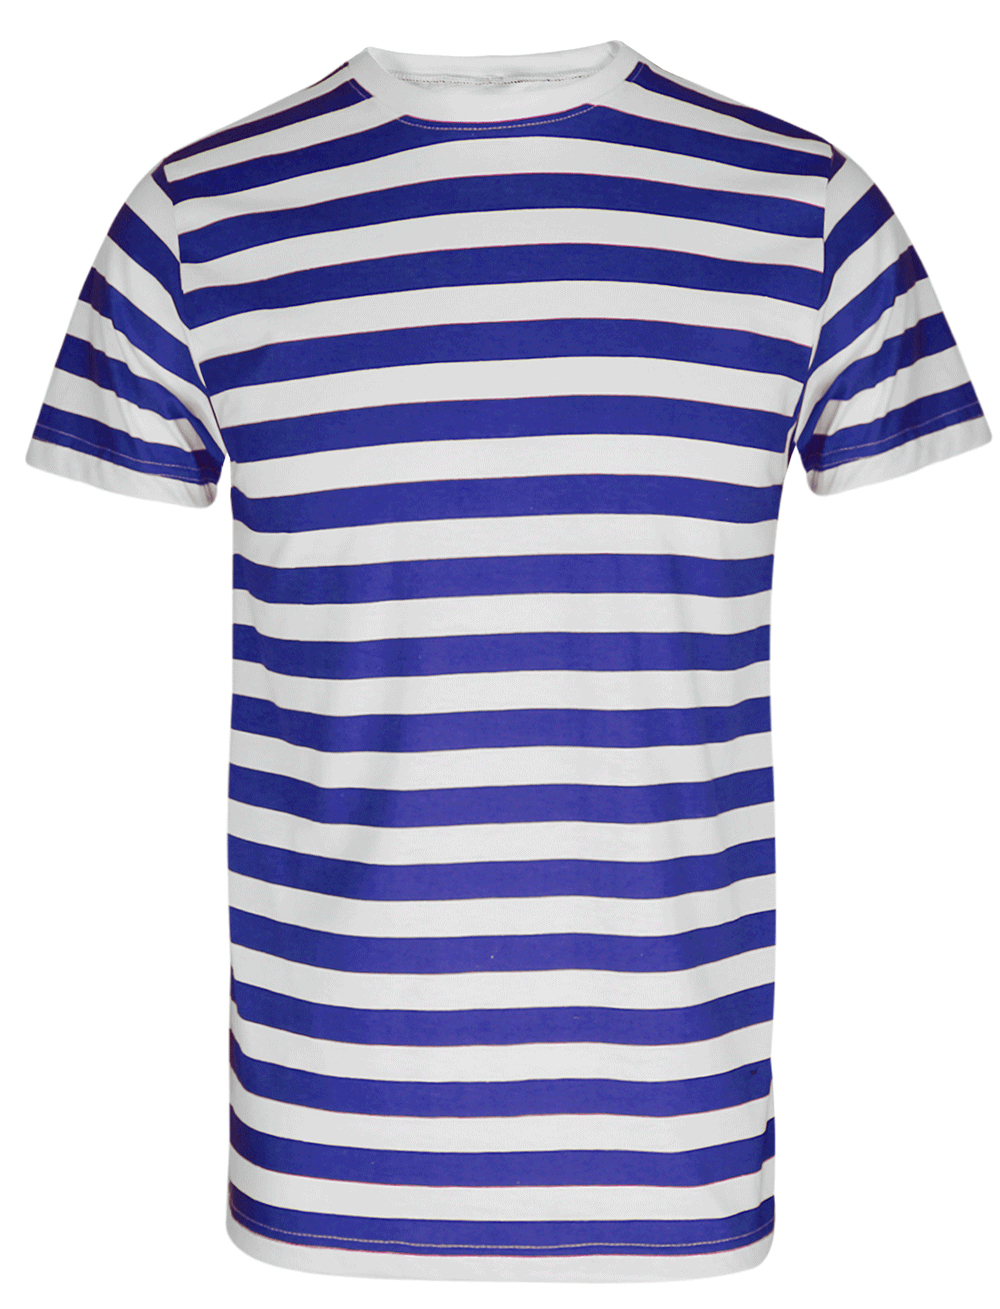 men 39 s boys red and white striped t shirt top blue black